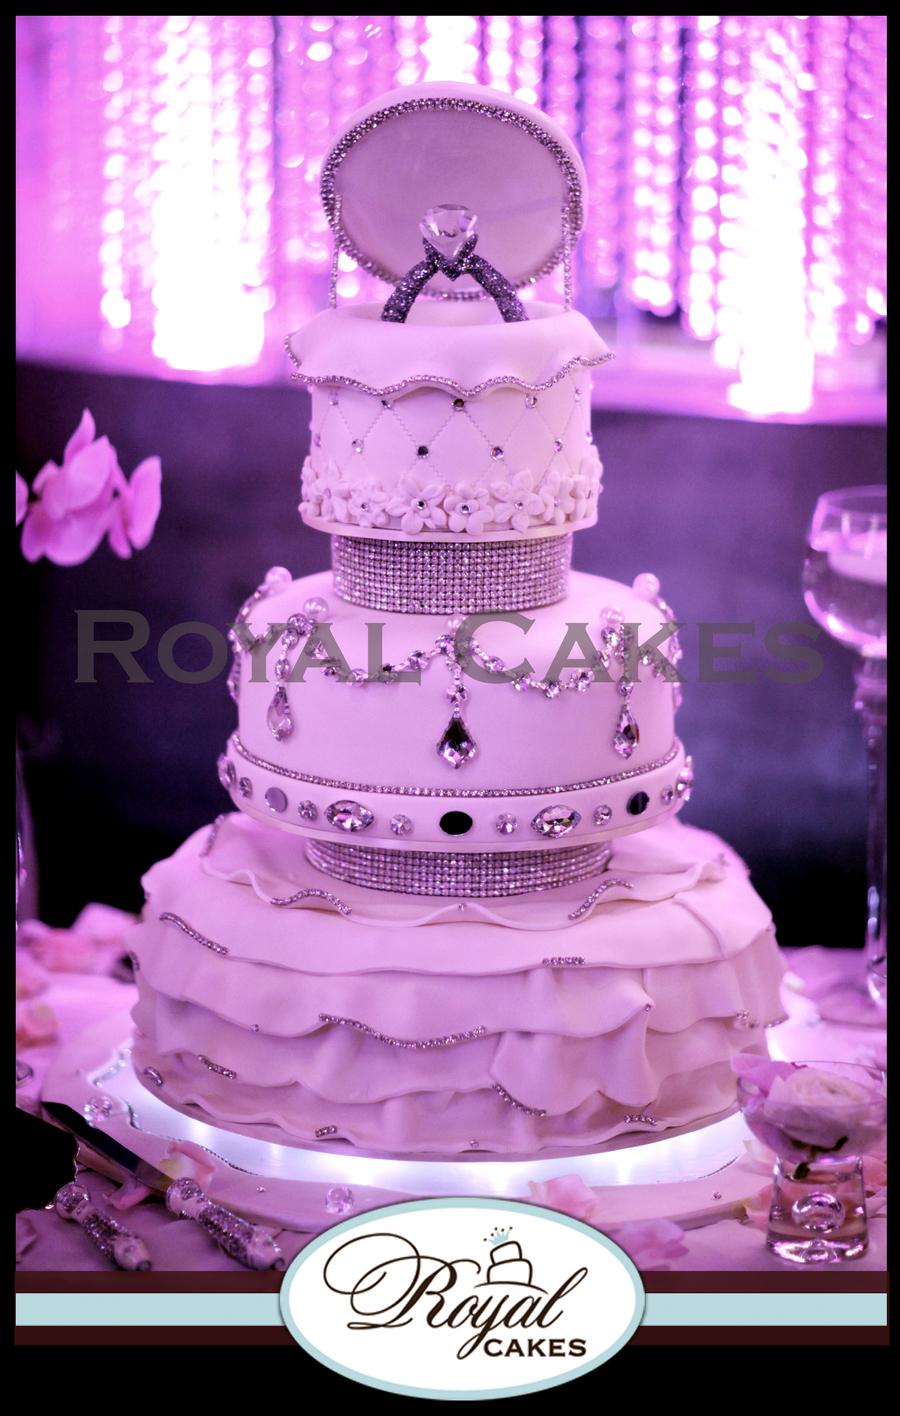 Marry Me The Perfect Engagement Cake Designed In Ruffles Chandelier Crystals And Our Signature Ring Topper Wwwroyalcakeslacom on Cake Central